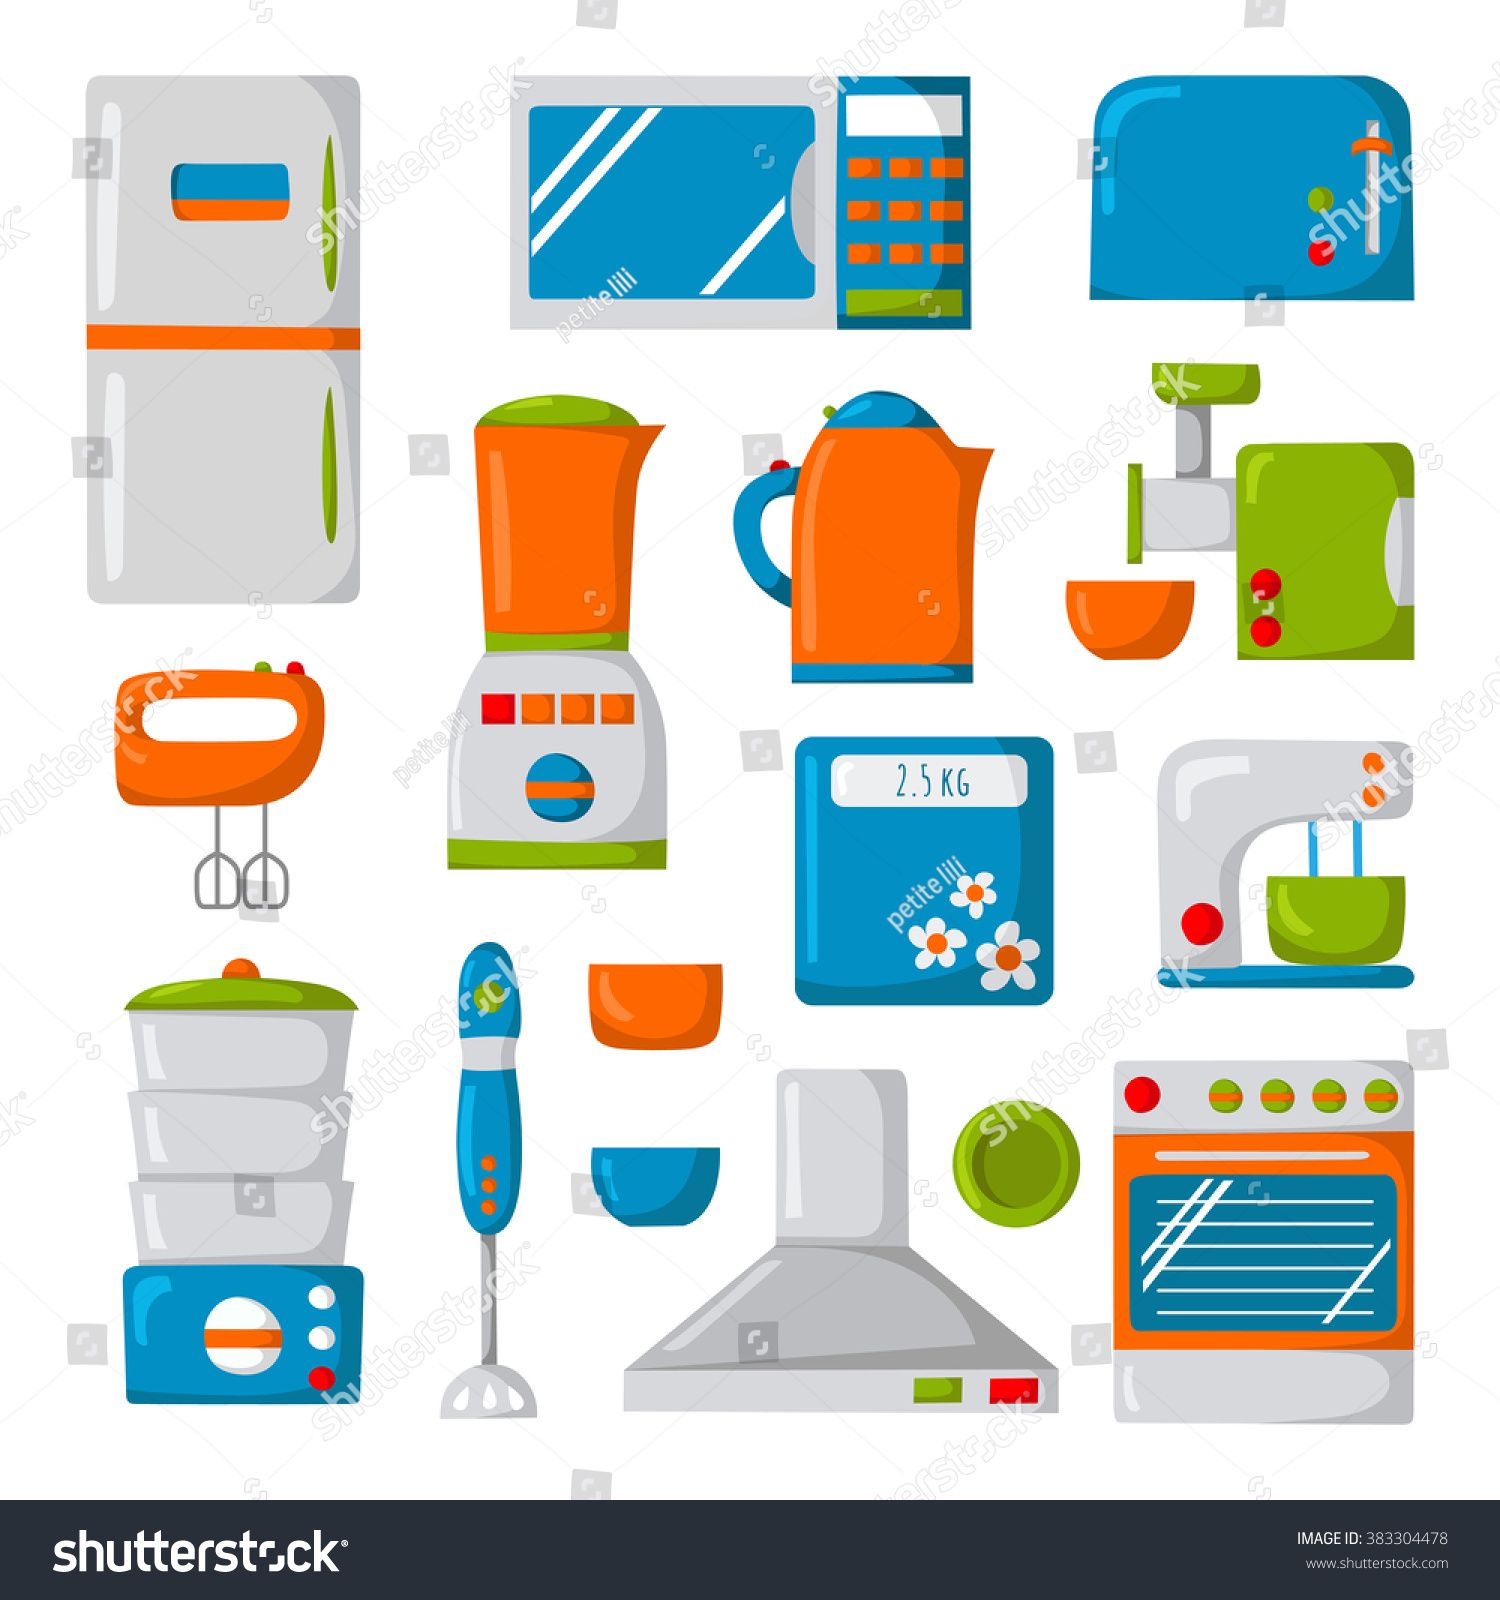 Cartoon kitchen appliances - Set Of Isolated Cartoon Kitchen Appliances Icons Cute Cartoon Objects Kitchen Domestic Electric Equipment